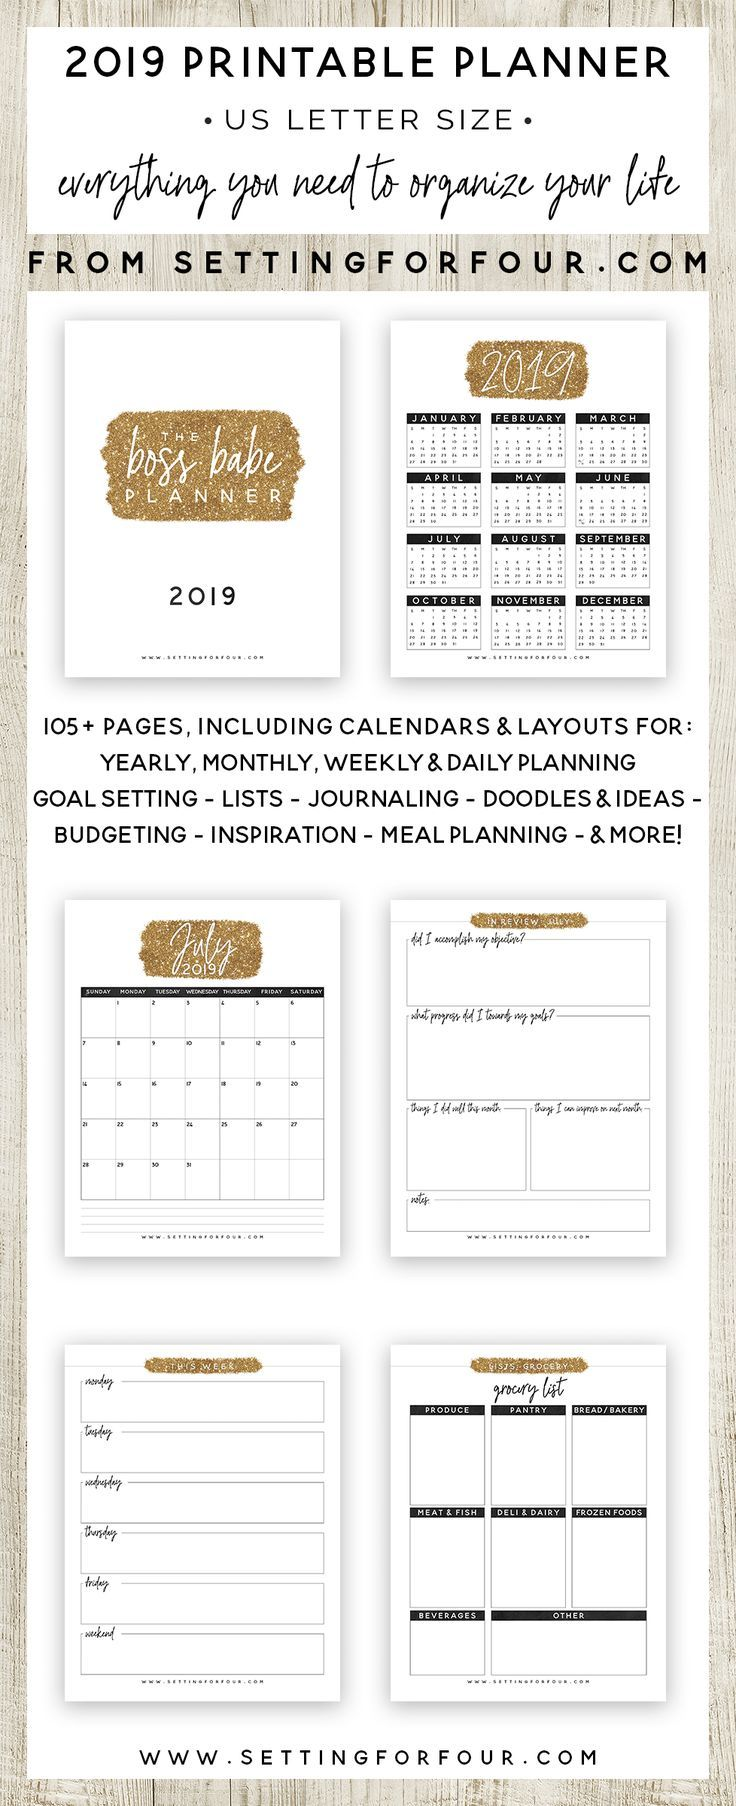 2019 Boss Babe Planner 106 Pages Bloggers Best Diy